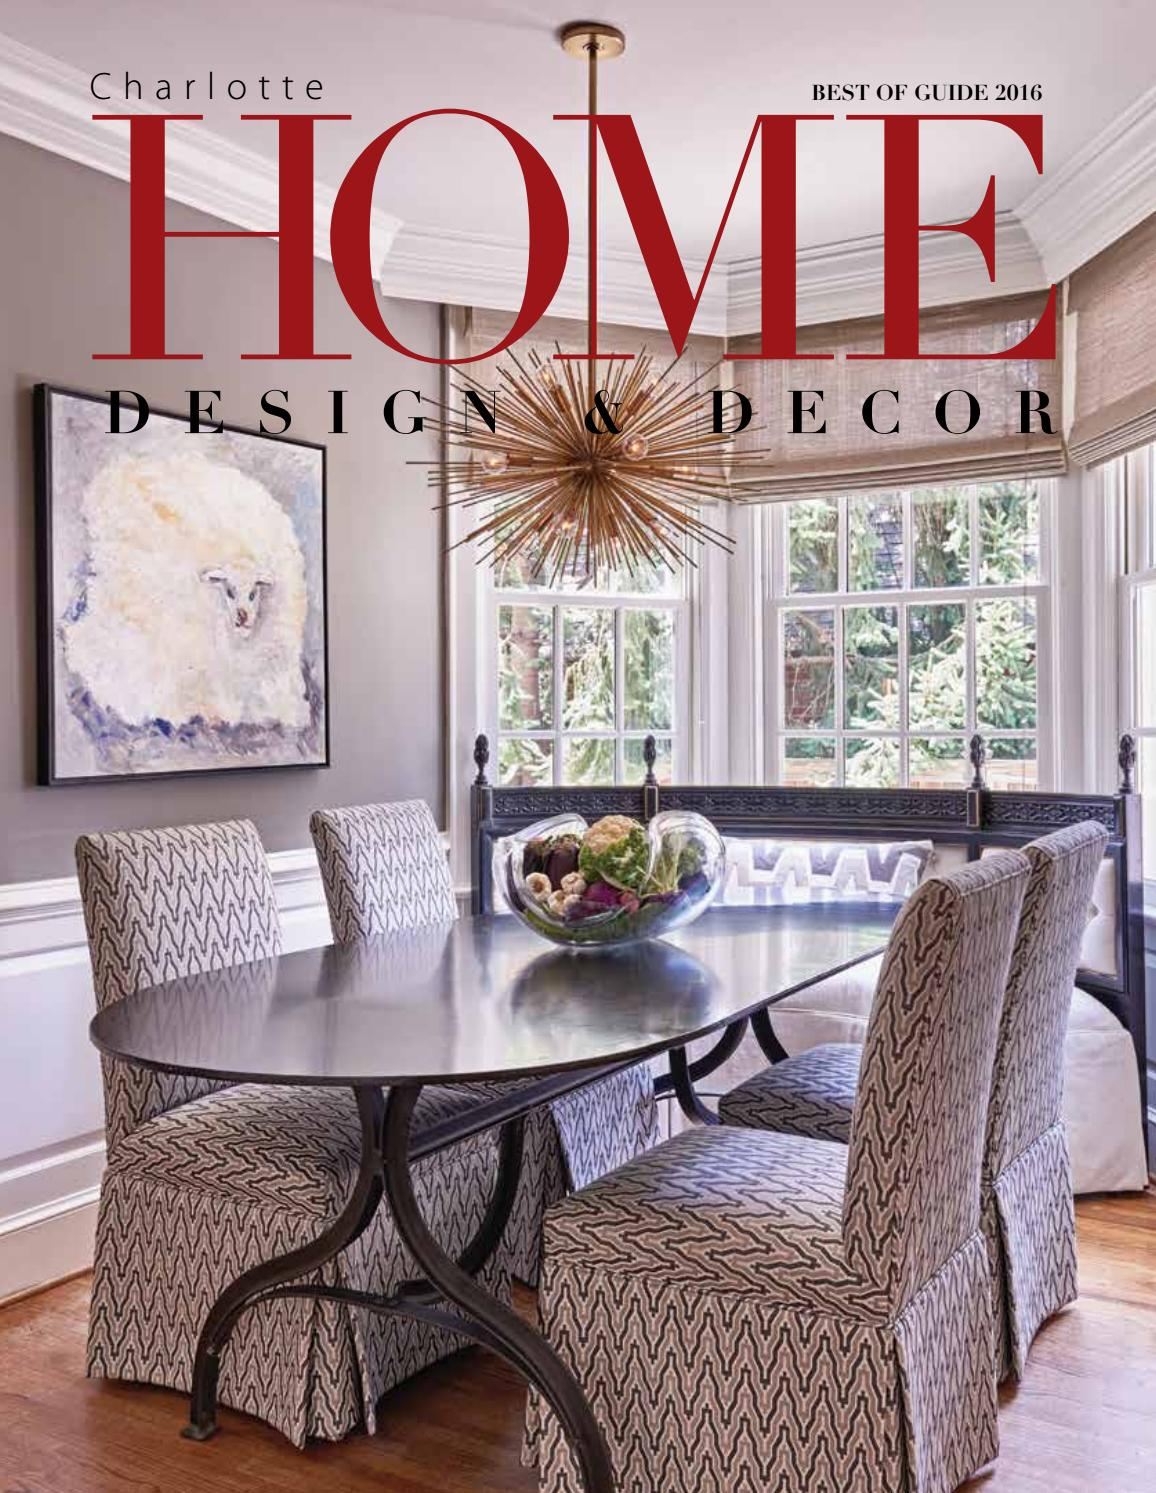 Home Design Magazine home by design magazine home facebook Home Design Decor Magazine Best Of Guide 2016